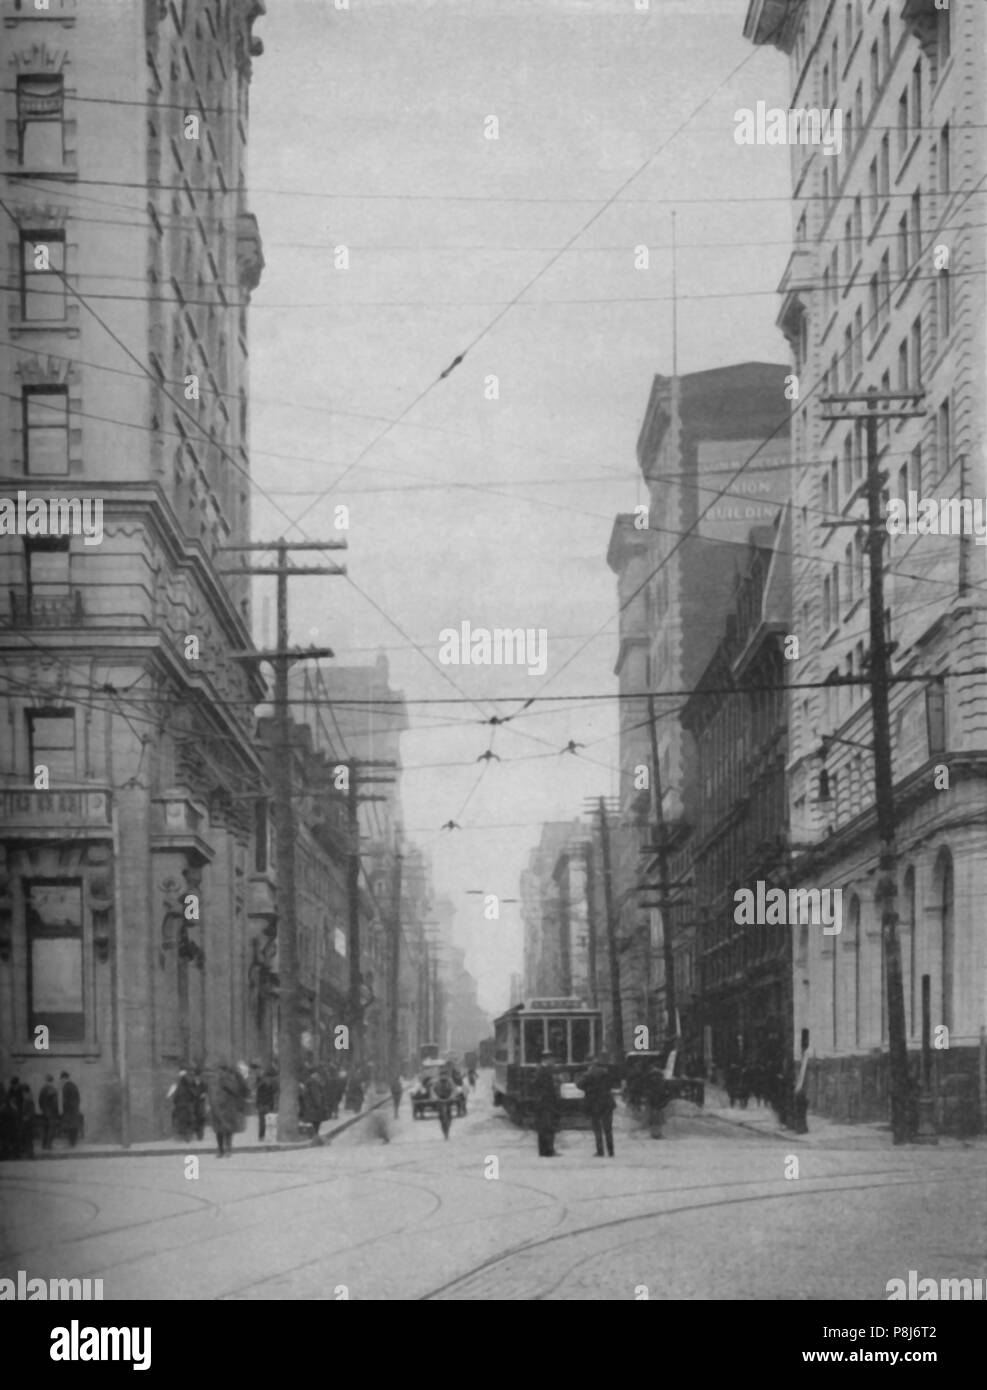 'Towering Facades of One of the City's Busiest Shopping Thoroughfares', c1935. Saint Jacques Street or St. James Street, Montreal, Canada. From Our Wo - Stock Image